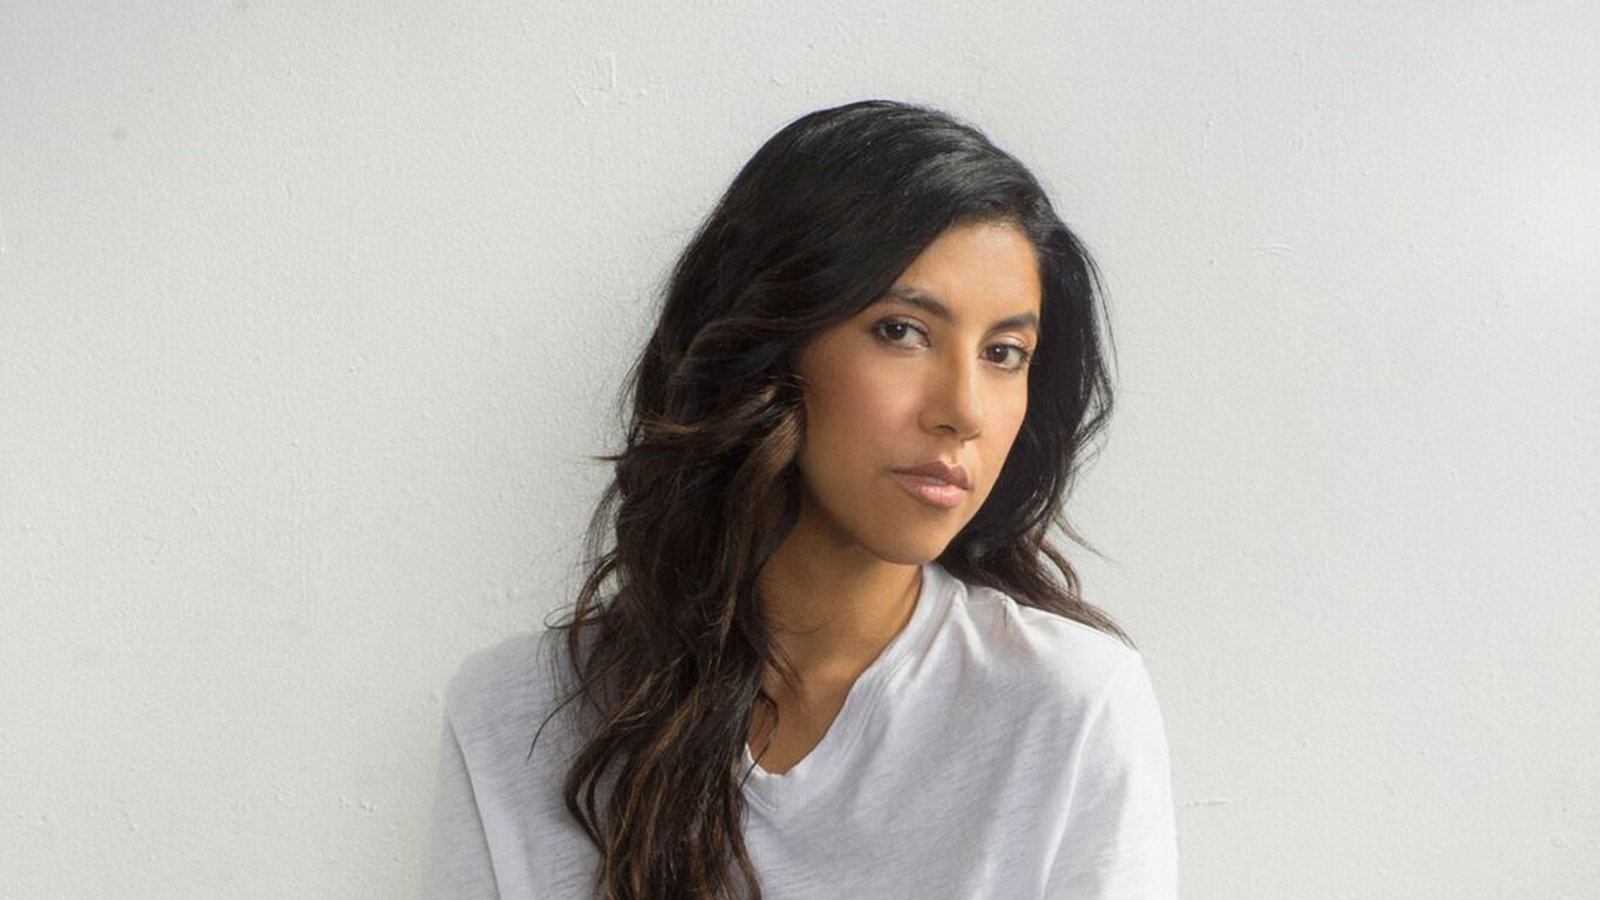 #HRCTwitterTakeover with Stephanie Beatriz for National Coming Out Day